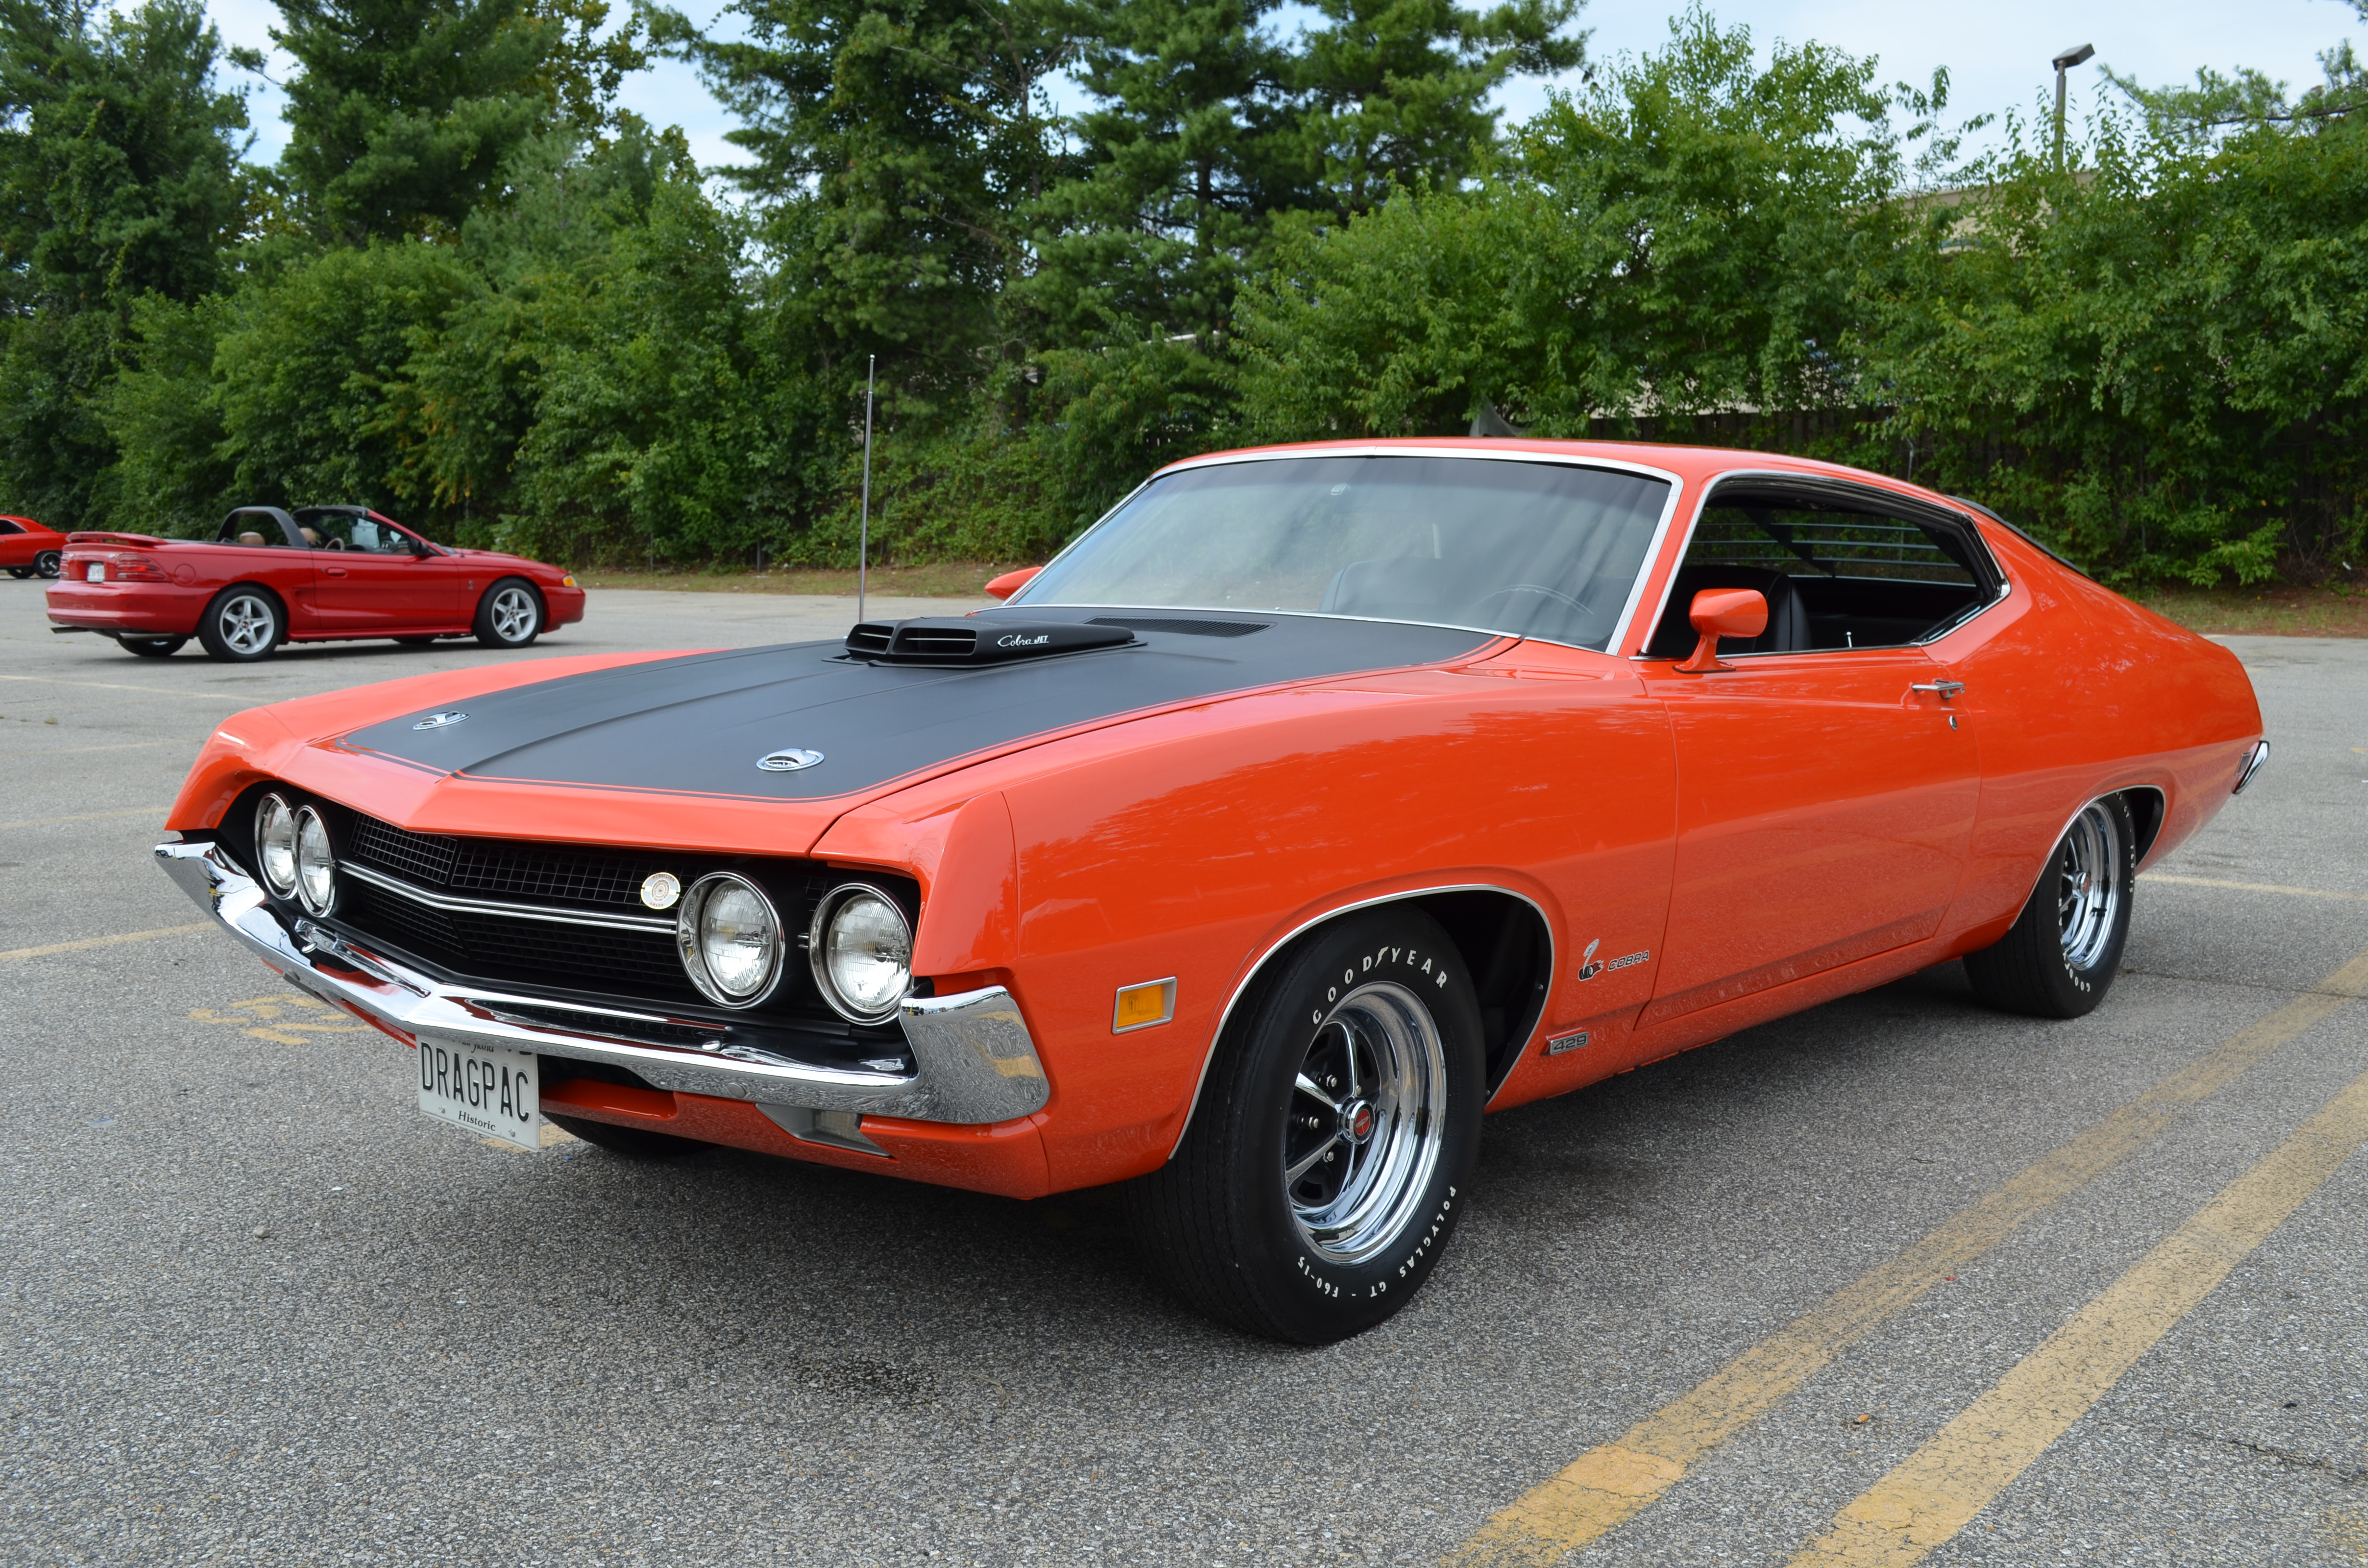 A Rare Slithery 1971 Torino Cobra Jet Comes On the Market - Street ...